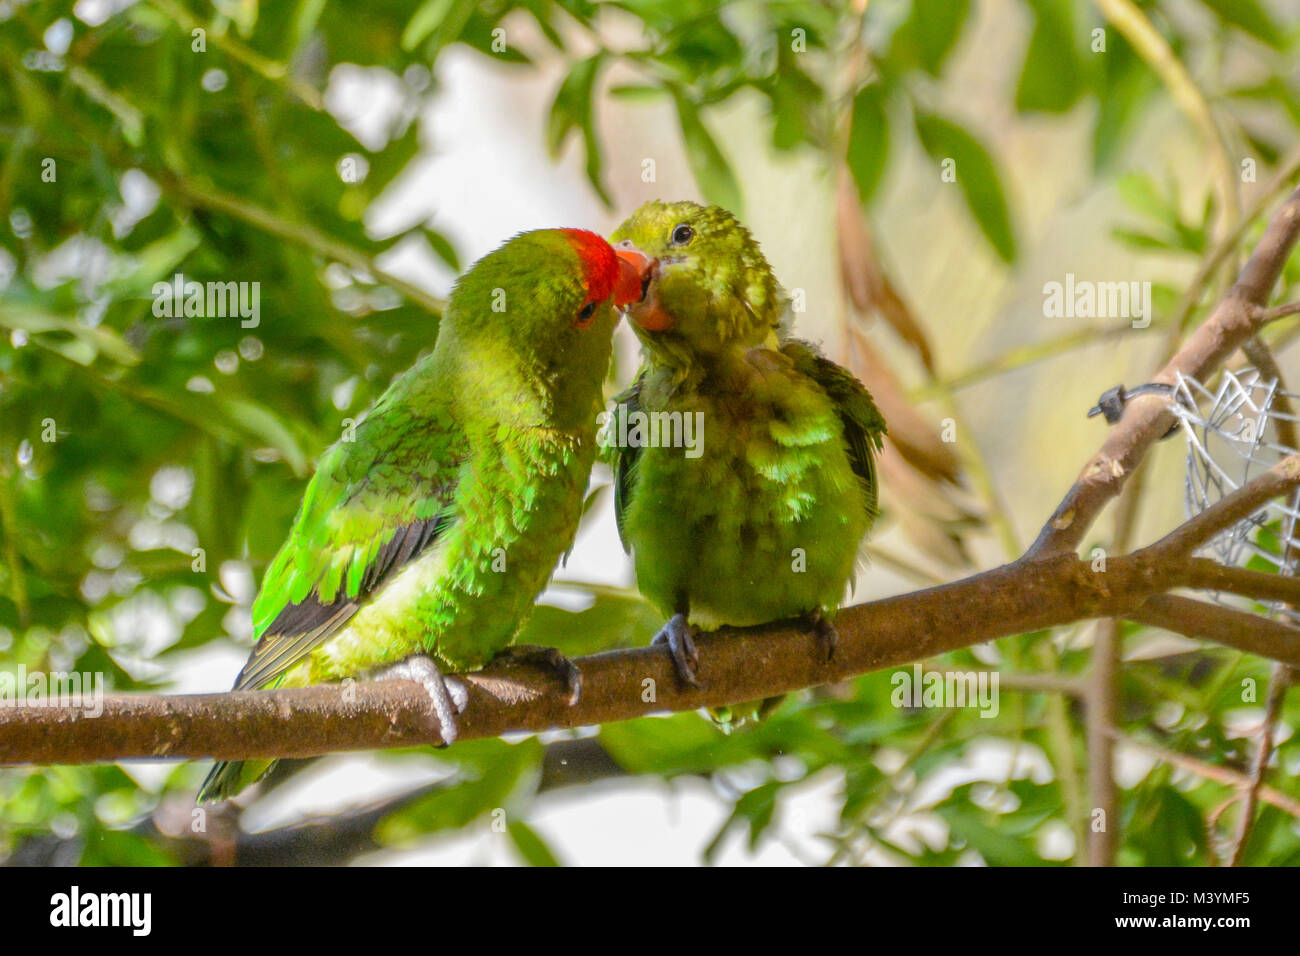 Paradise Park, Hayle, Cornwall. 13th Feb 2018. A pair of Lovebirds cuddle up on a branch while their chick peeks - Stock Image